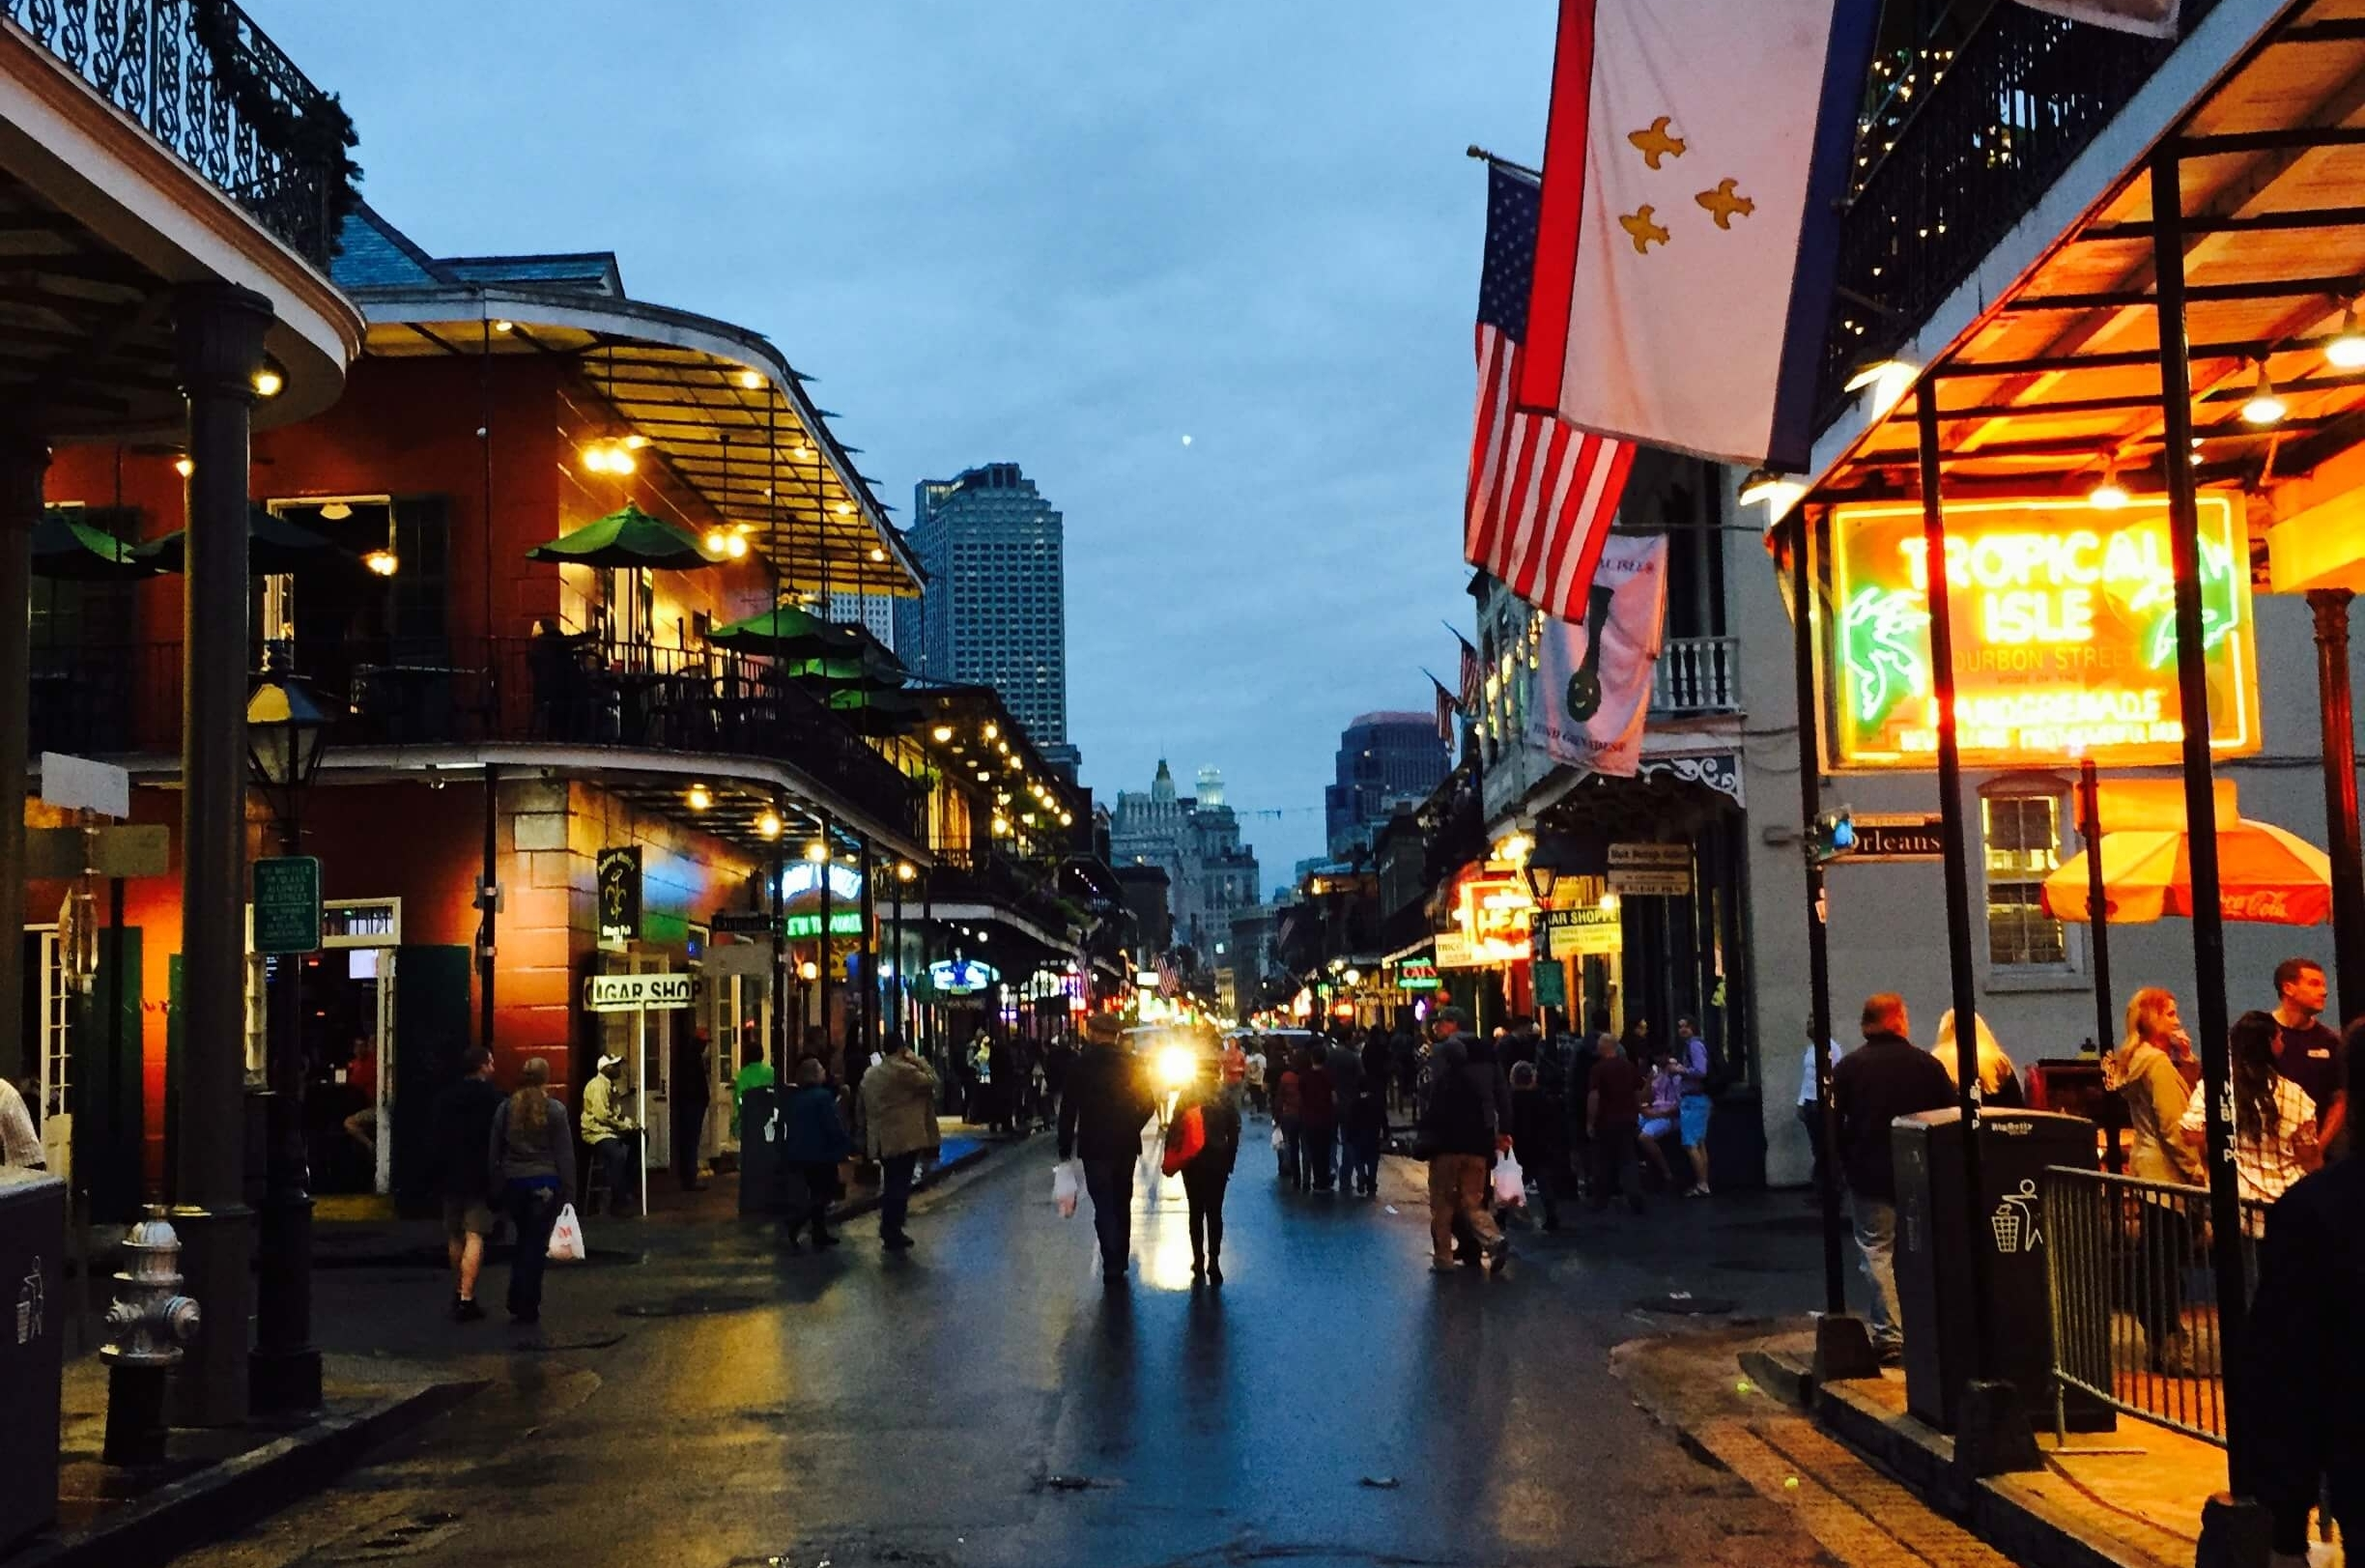 Bourbon Street in New Orleans. #1 in Best Things to Do in the French Quarter.